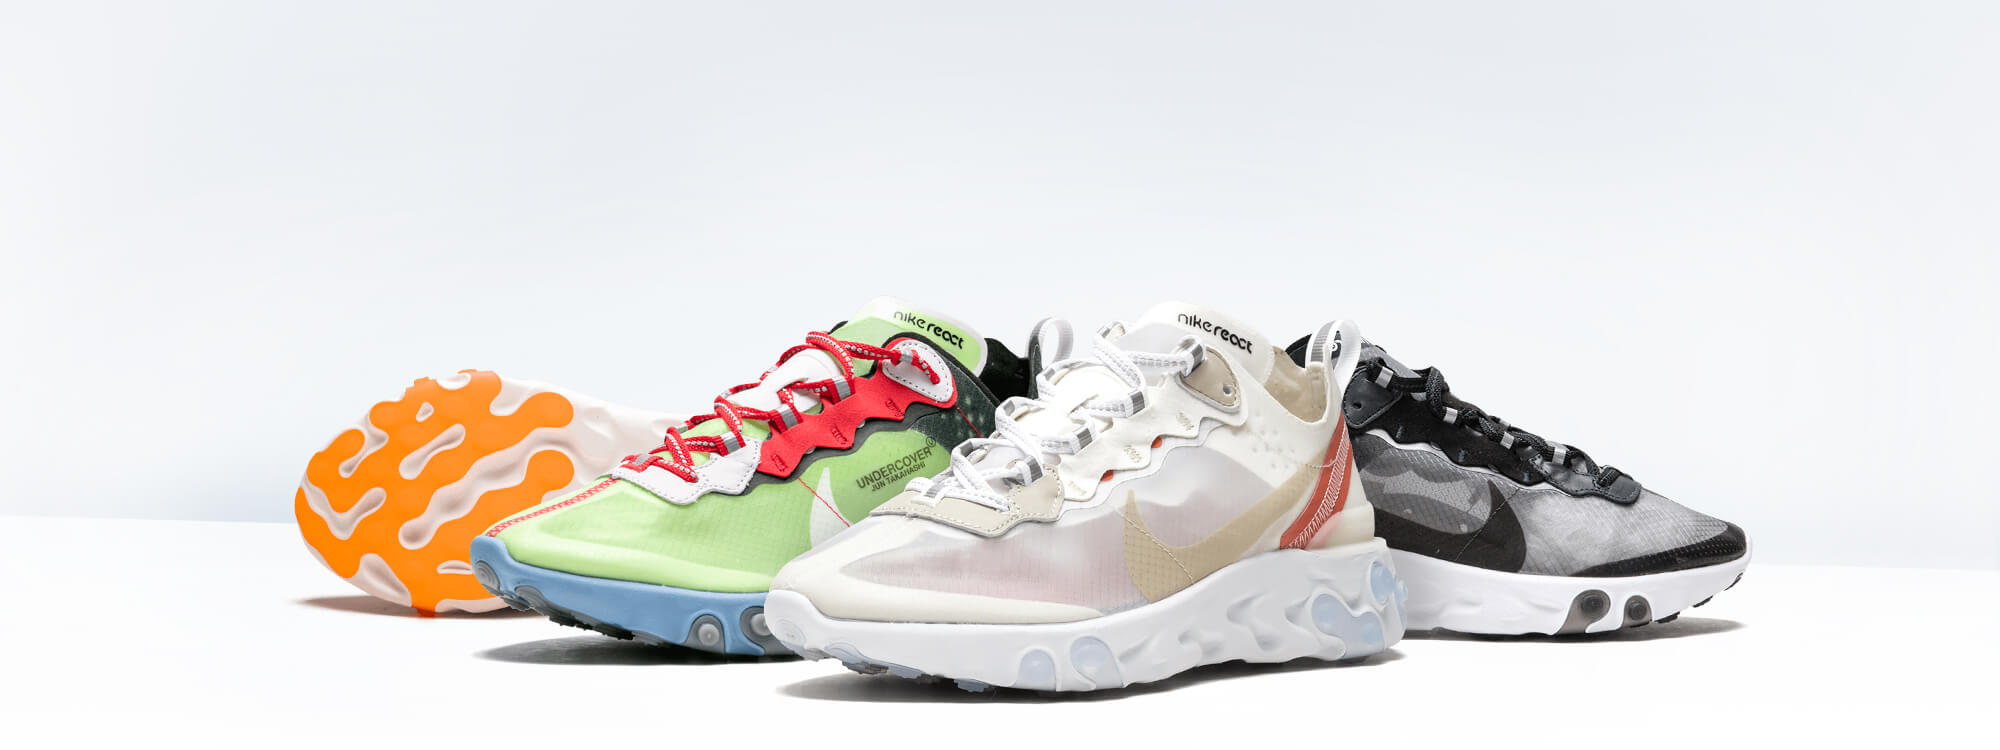 Buy new Nike REACT ELEMENT 87  unauthorized